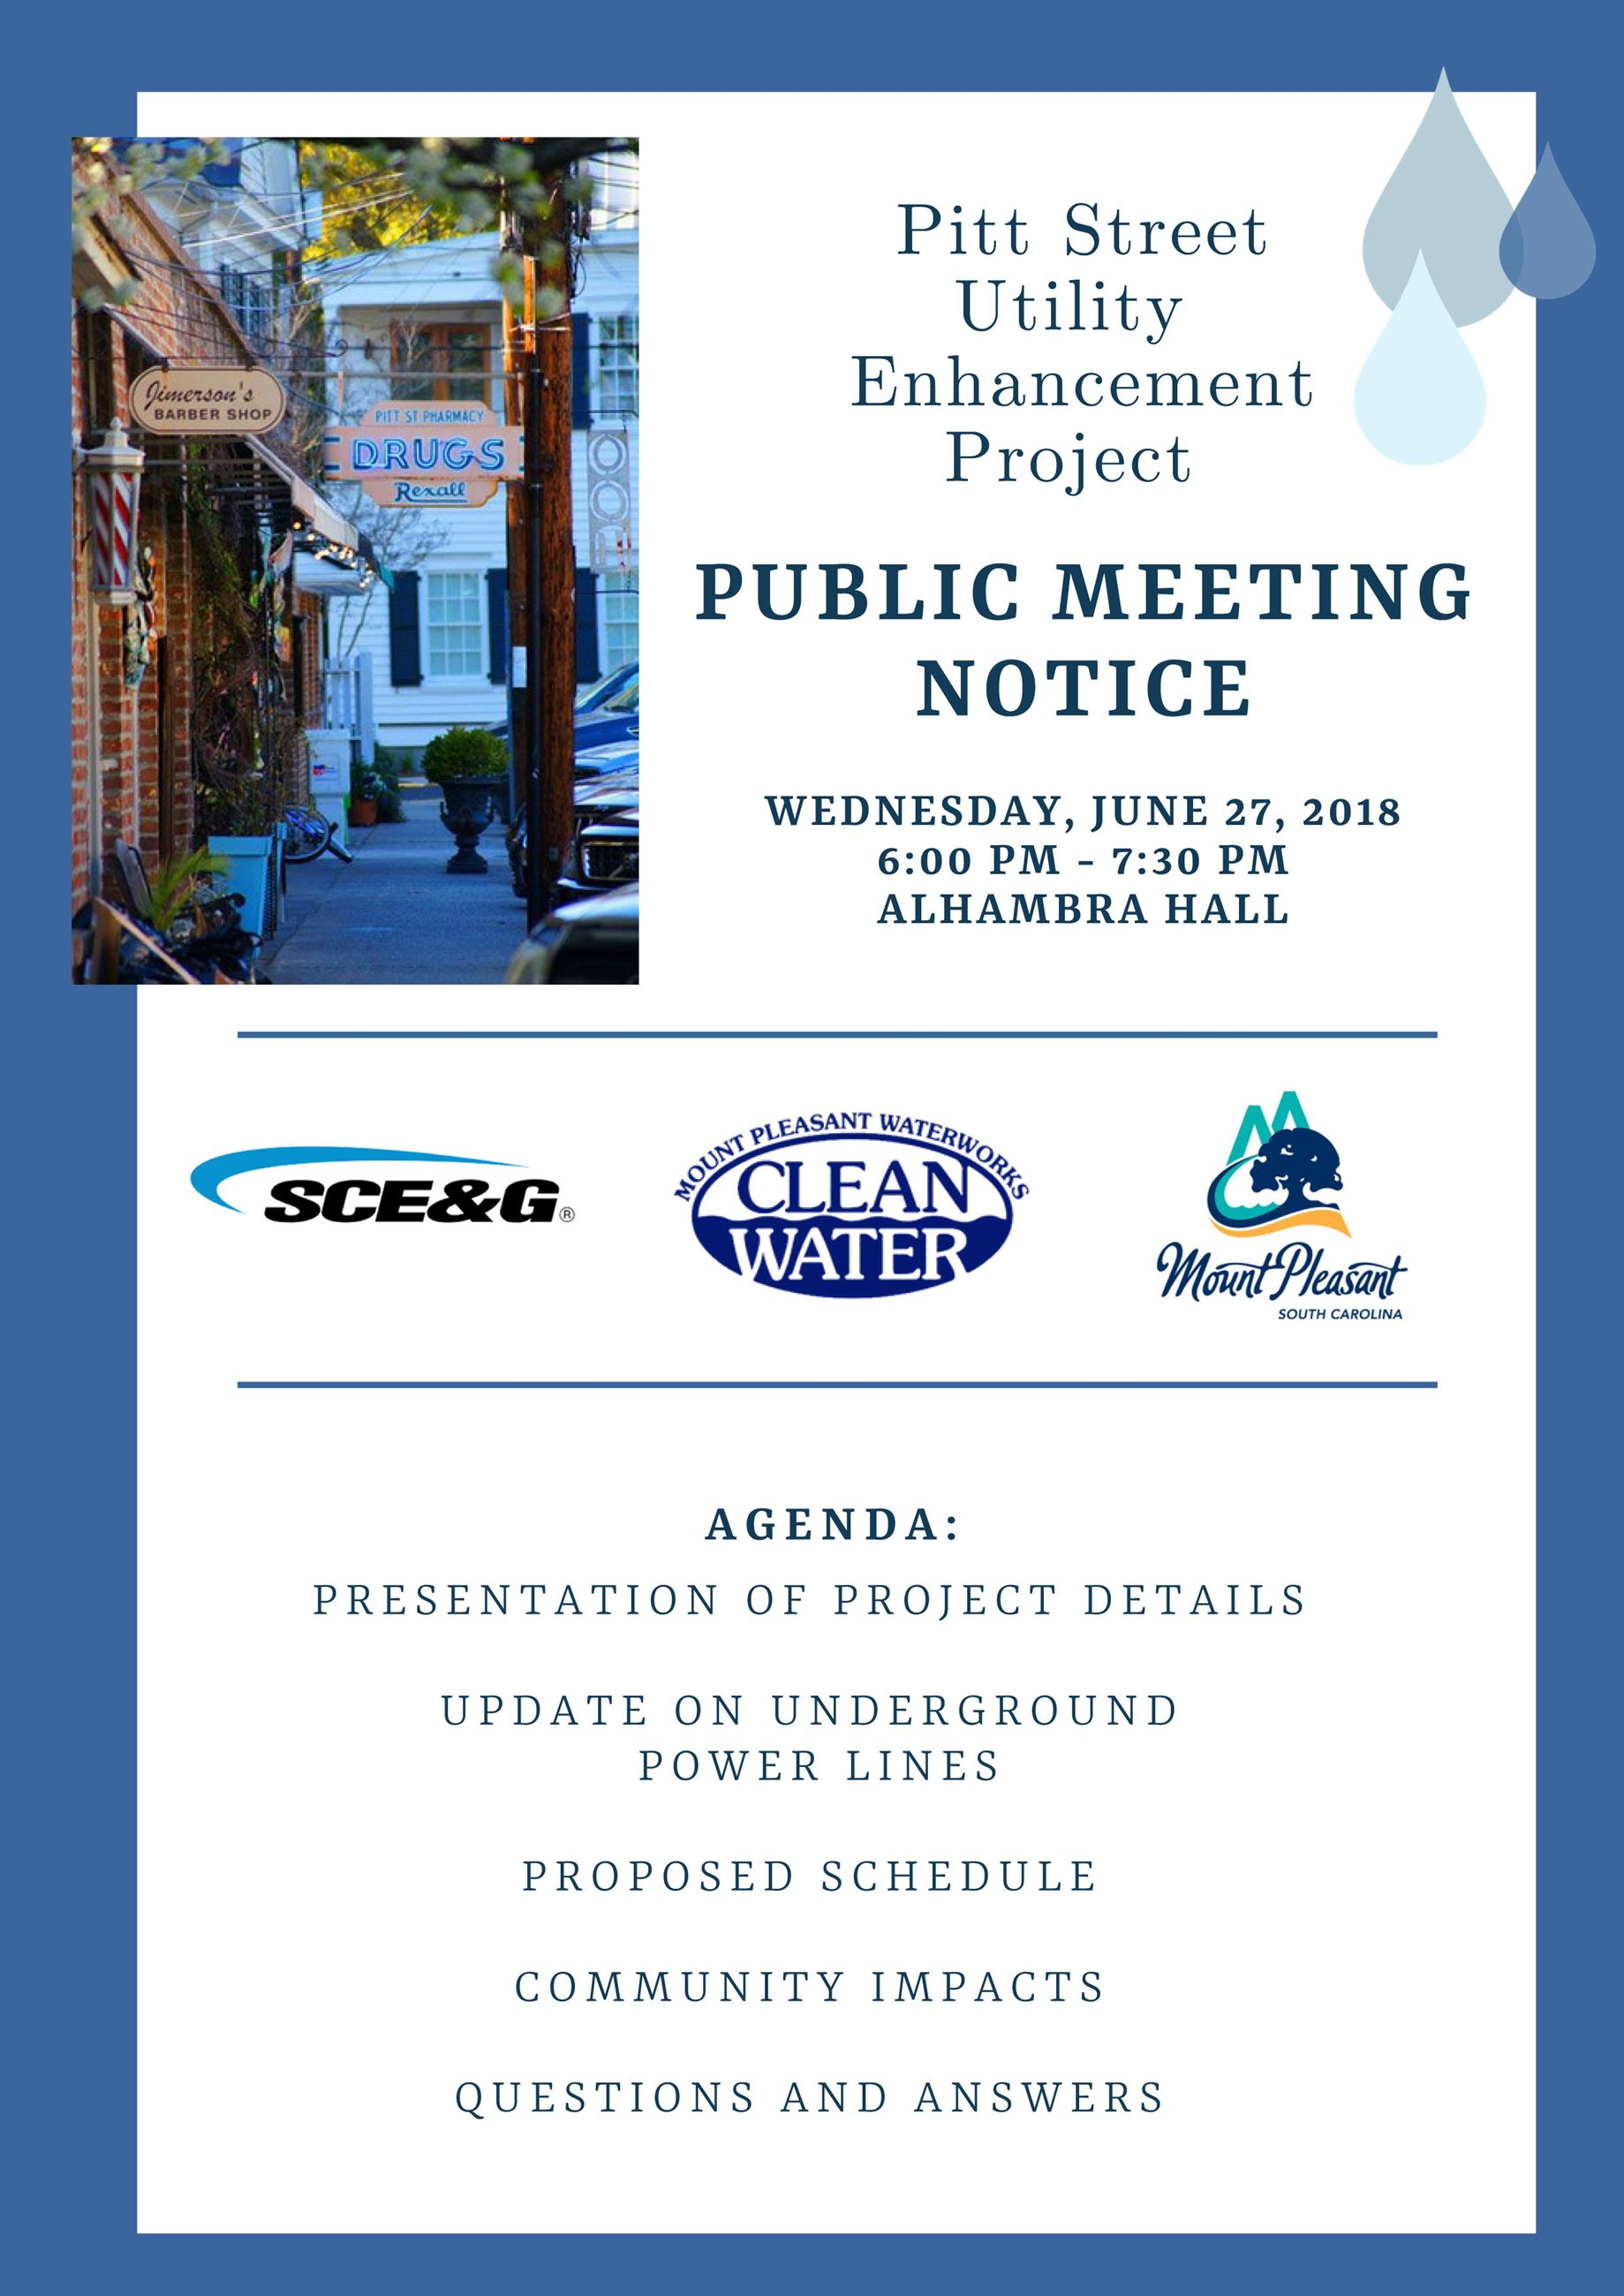 Pitt Street Utility Enhancement project meeting invite